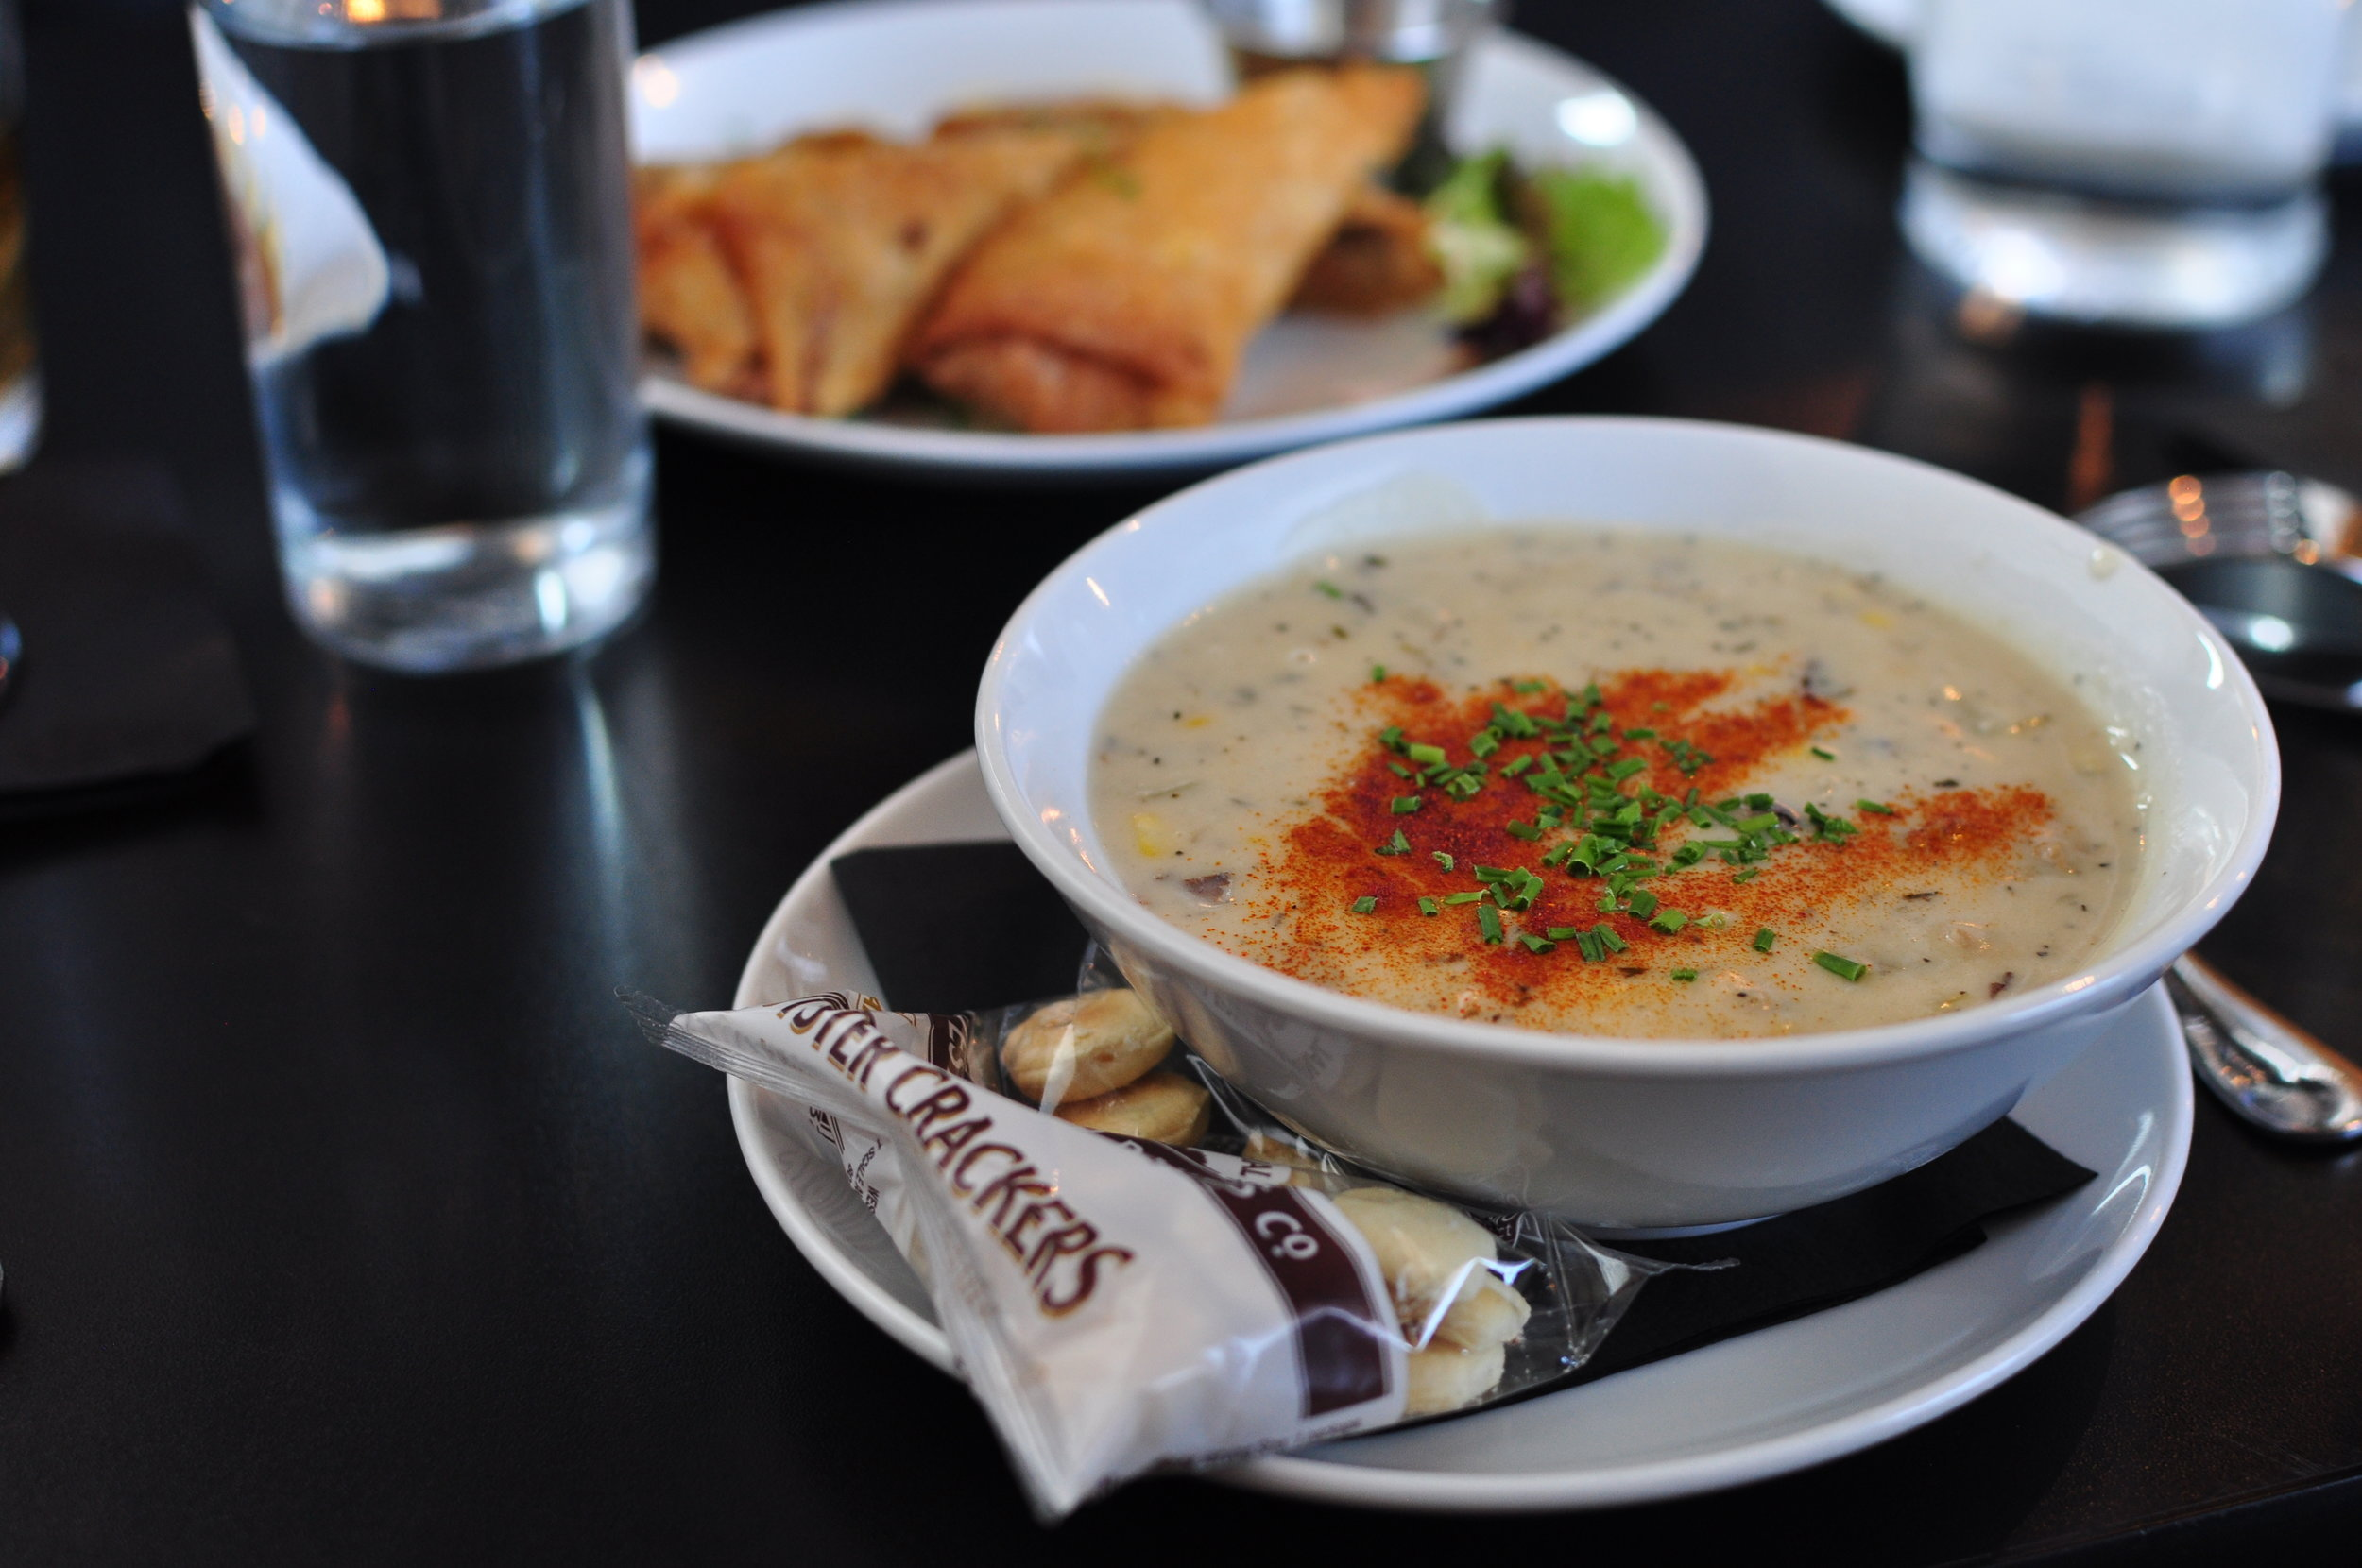 The Oysterman's Oyster Chowder